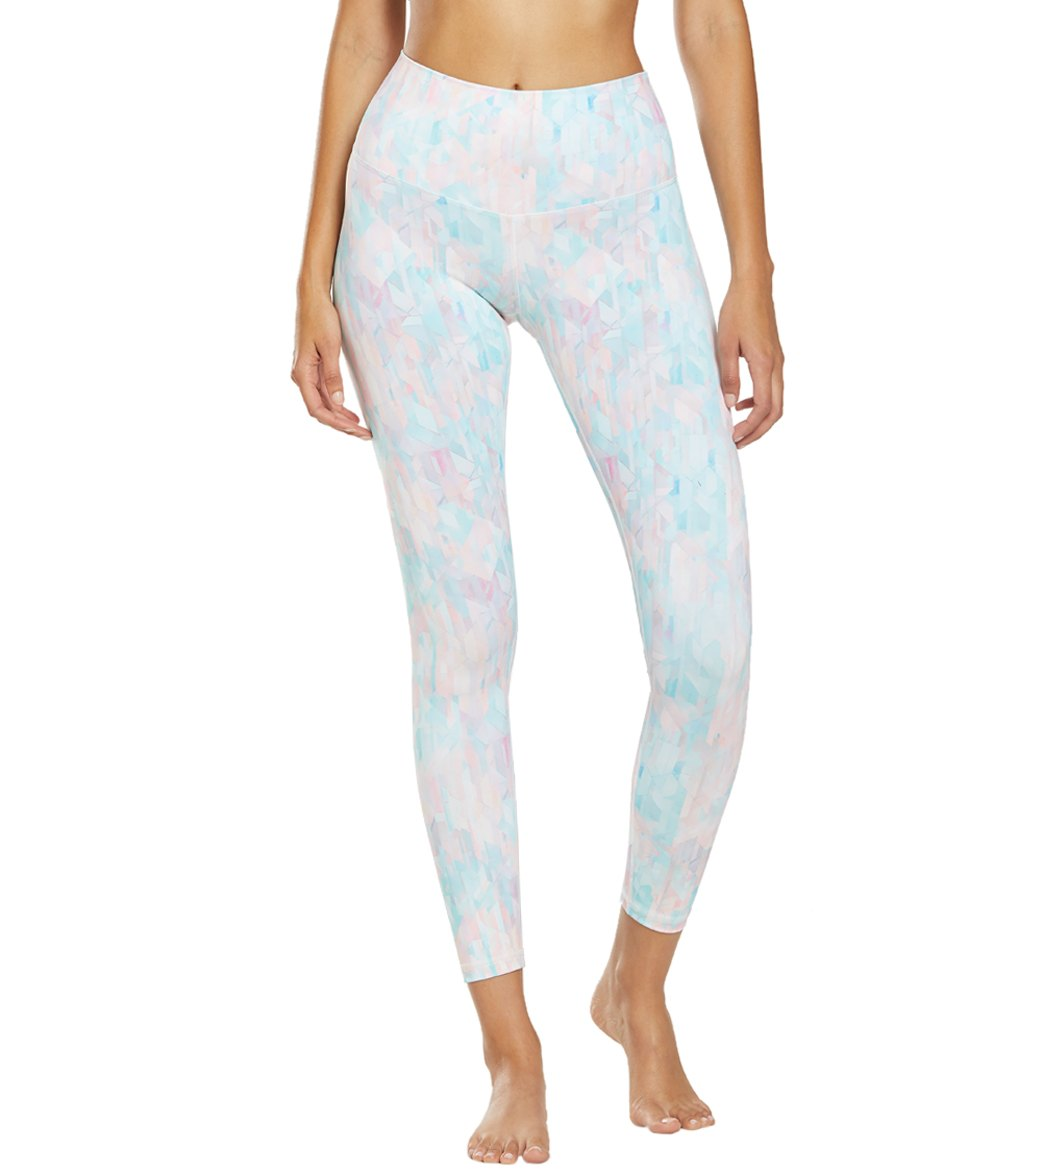 a83bbf6488050 DYI Printed Signature Yoga Leggings at YogaOutlet.com - Free Shipping